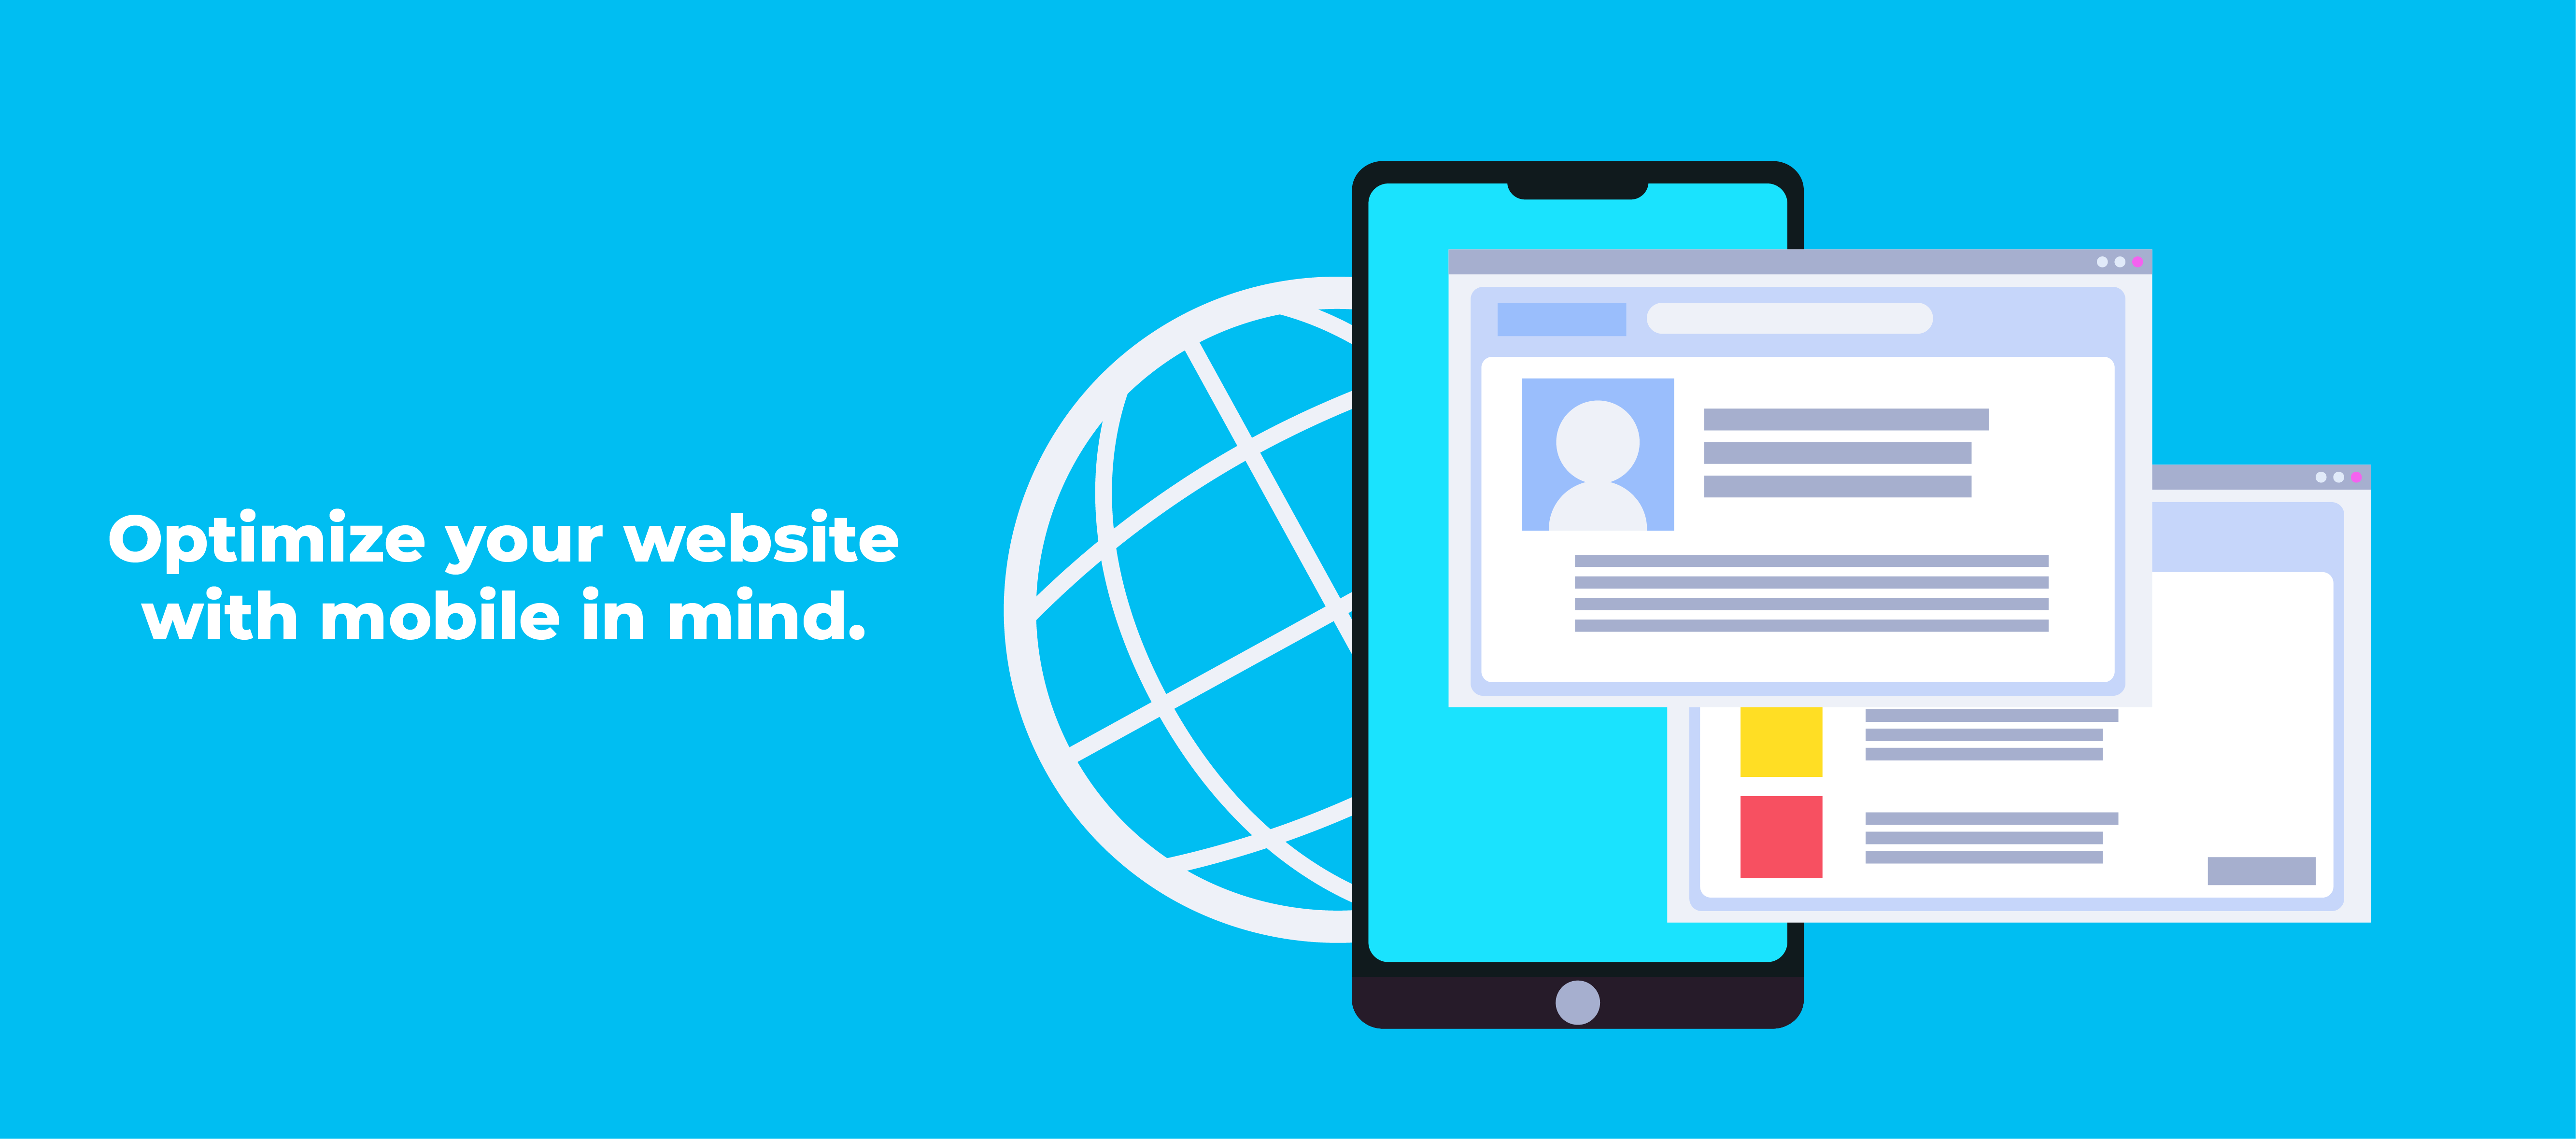 Optimize your website with mobile in mind.